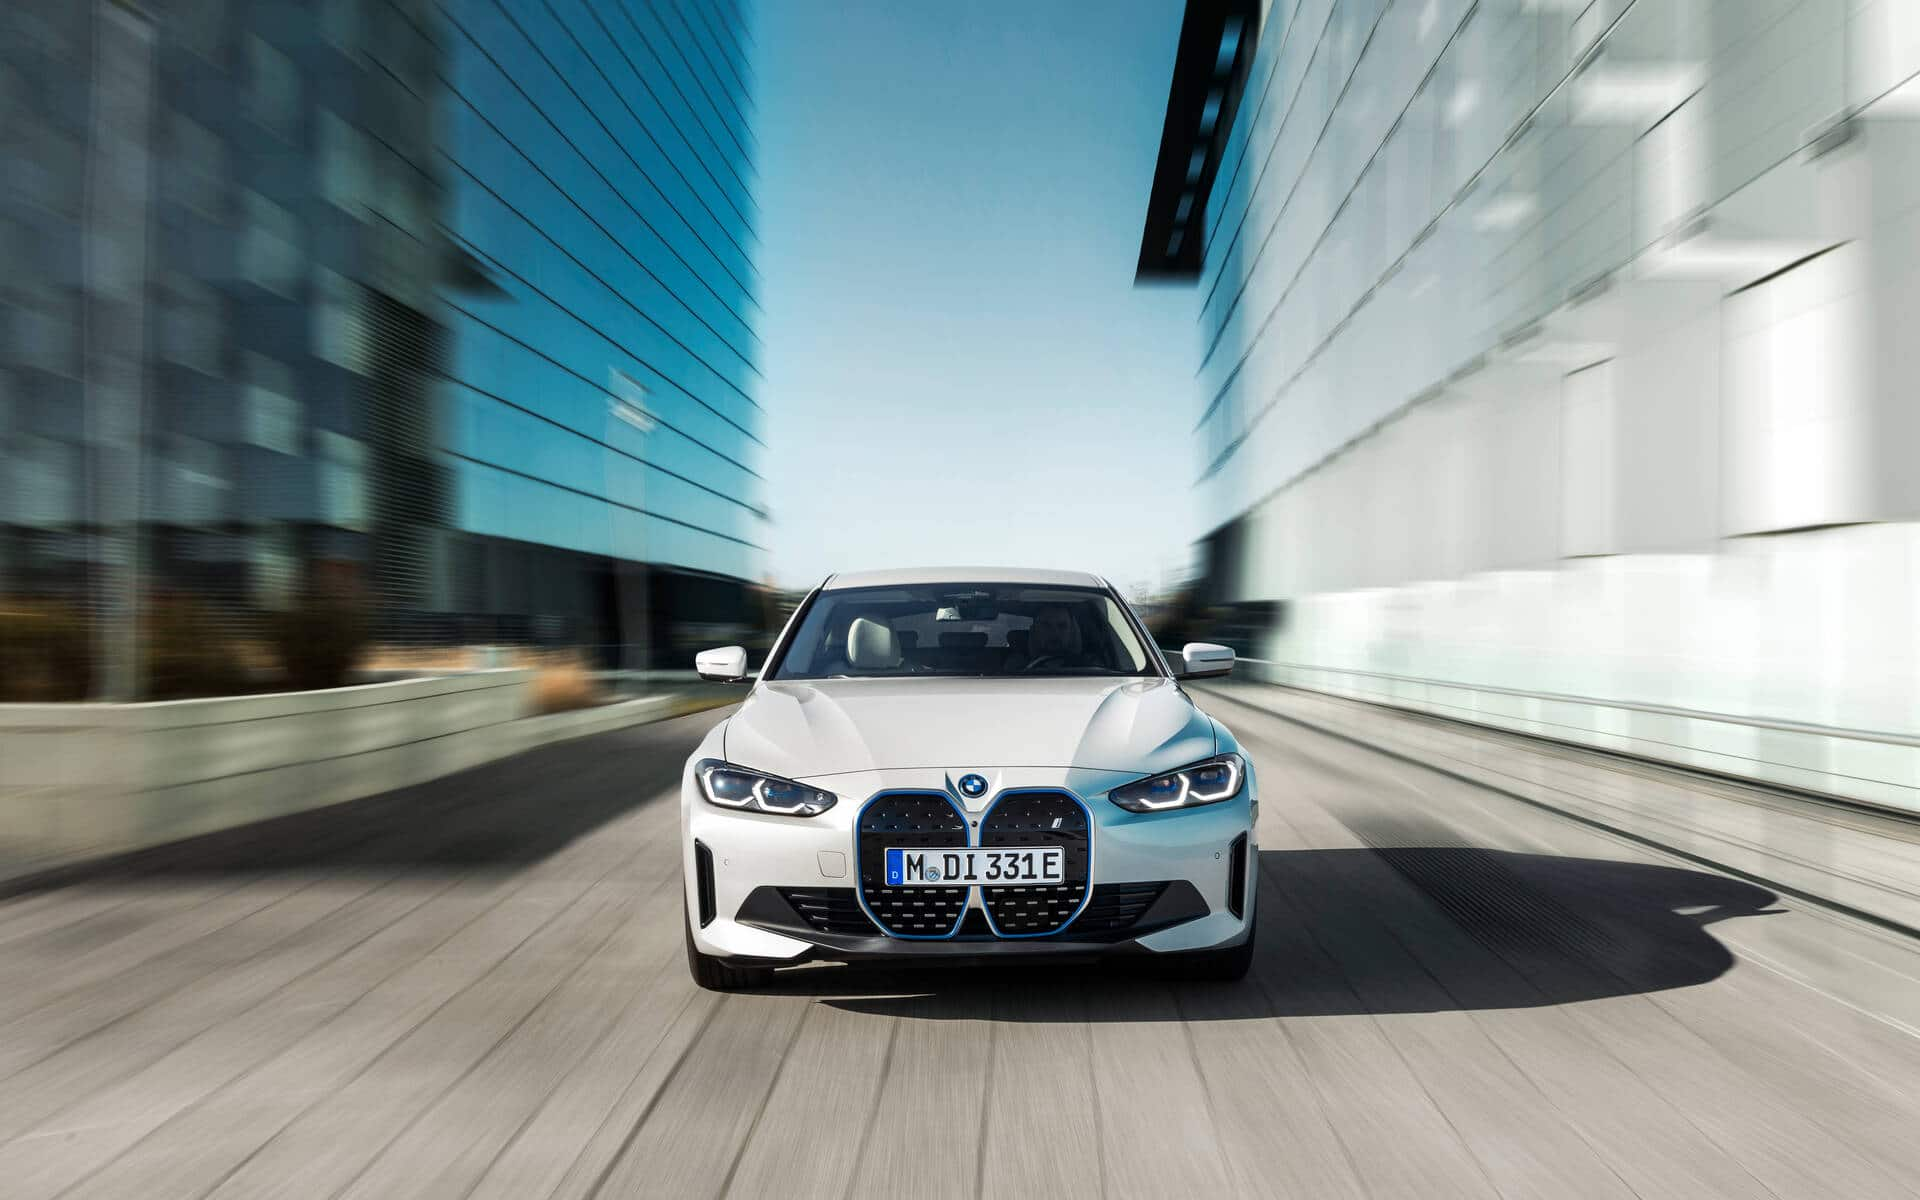 The BMW i4 M50 offers 536 horsepower. Source: www.guideauto.ca